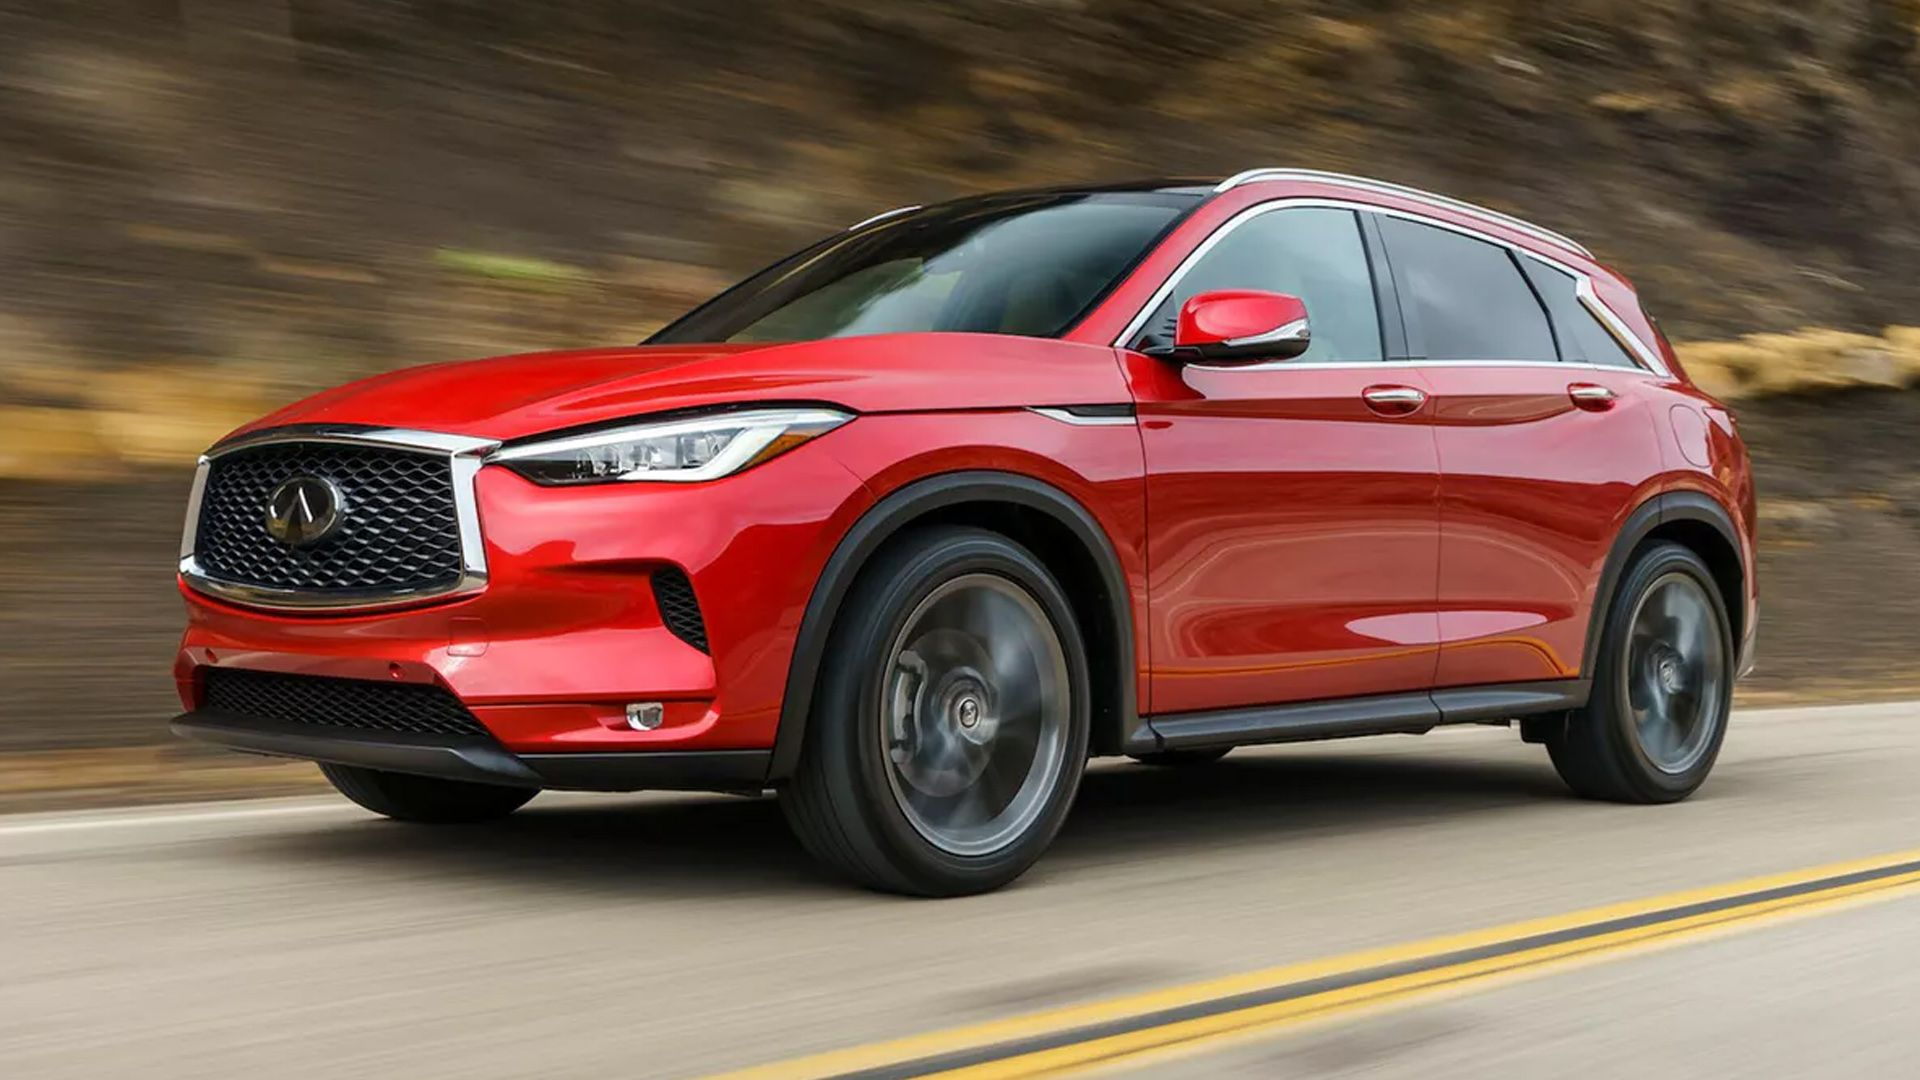 Infiniti Has Released Insights On The Design Of The Interior For The All New 2019 Qx50 Suv For Which Designers Took Inspiration Fro Dizajn Avtomobil Motocikl